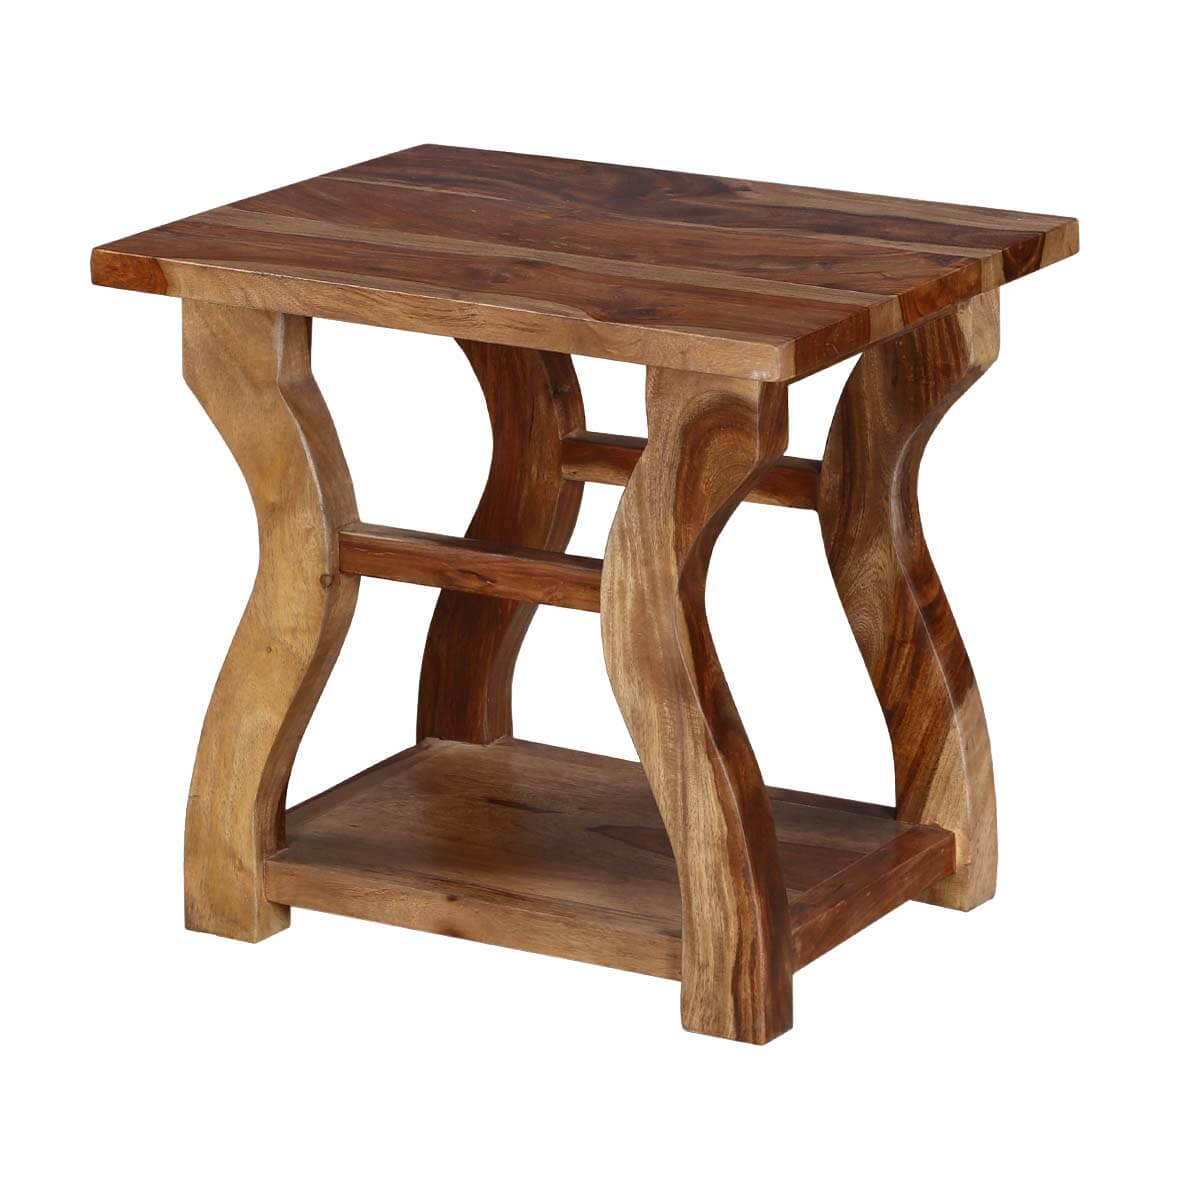 Willamette 19 Rustic Natural Woodgrain Hour Glass Shape End Table